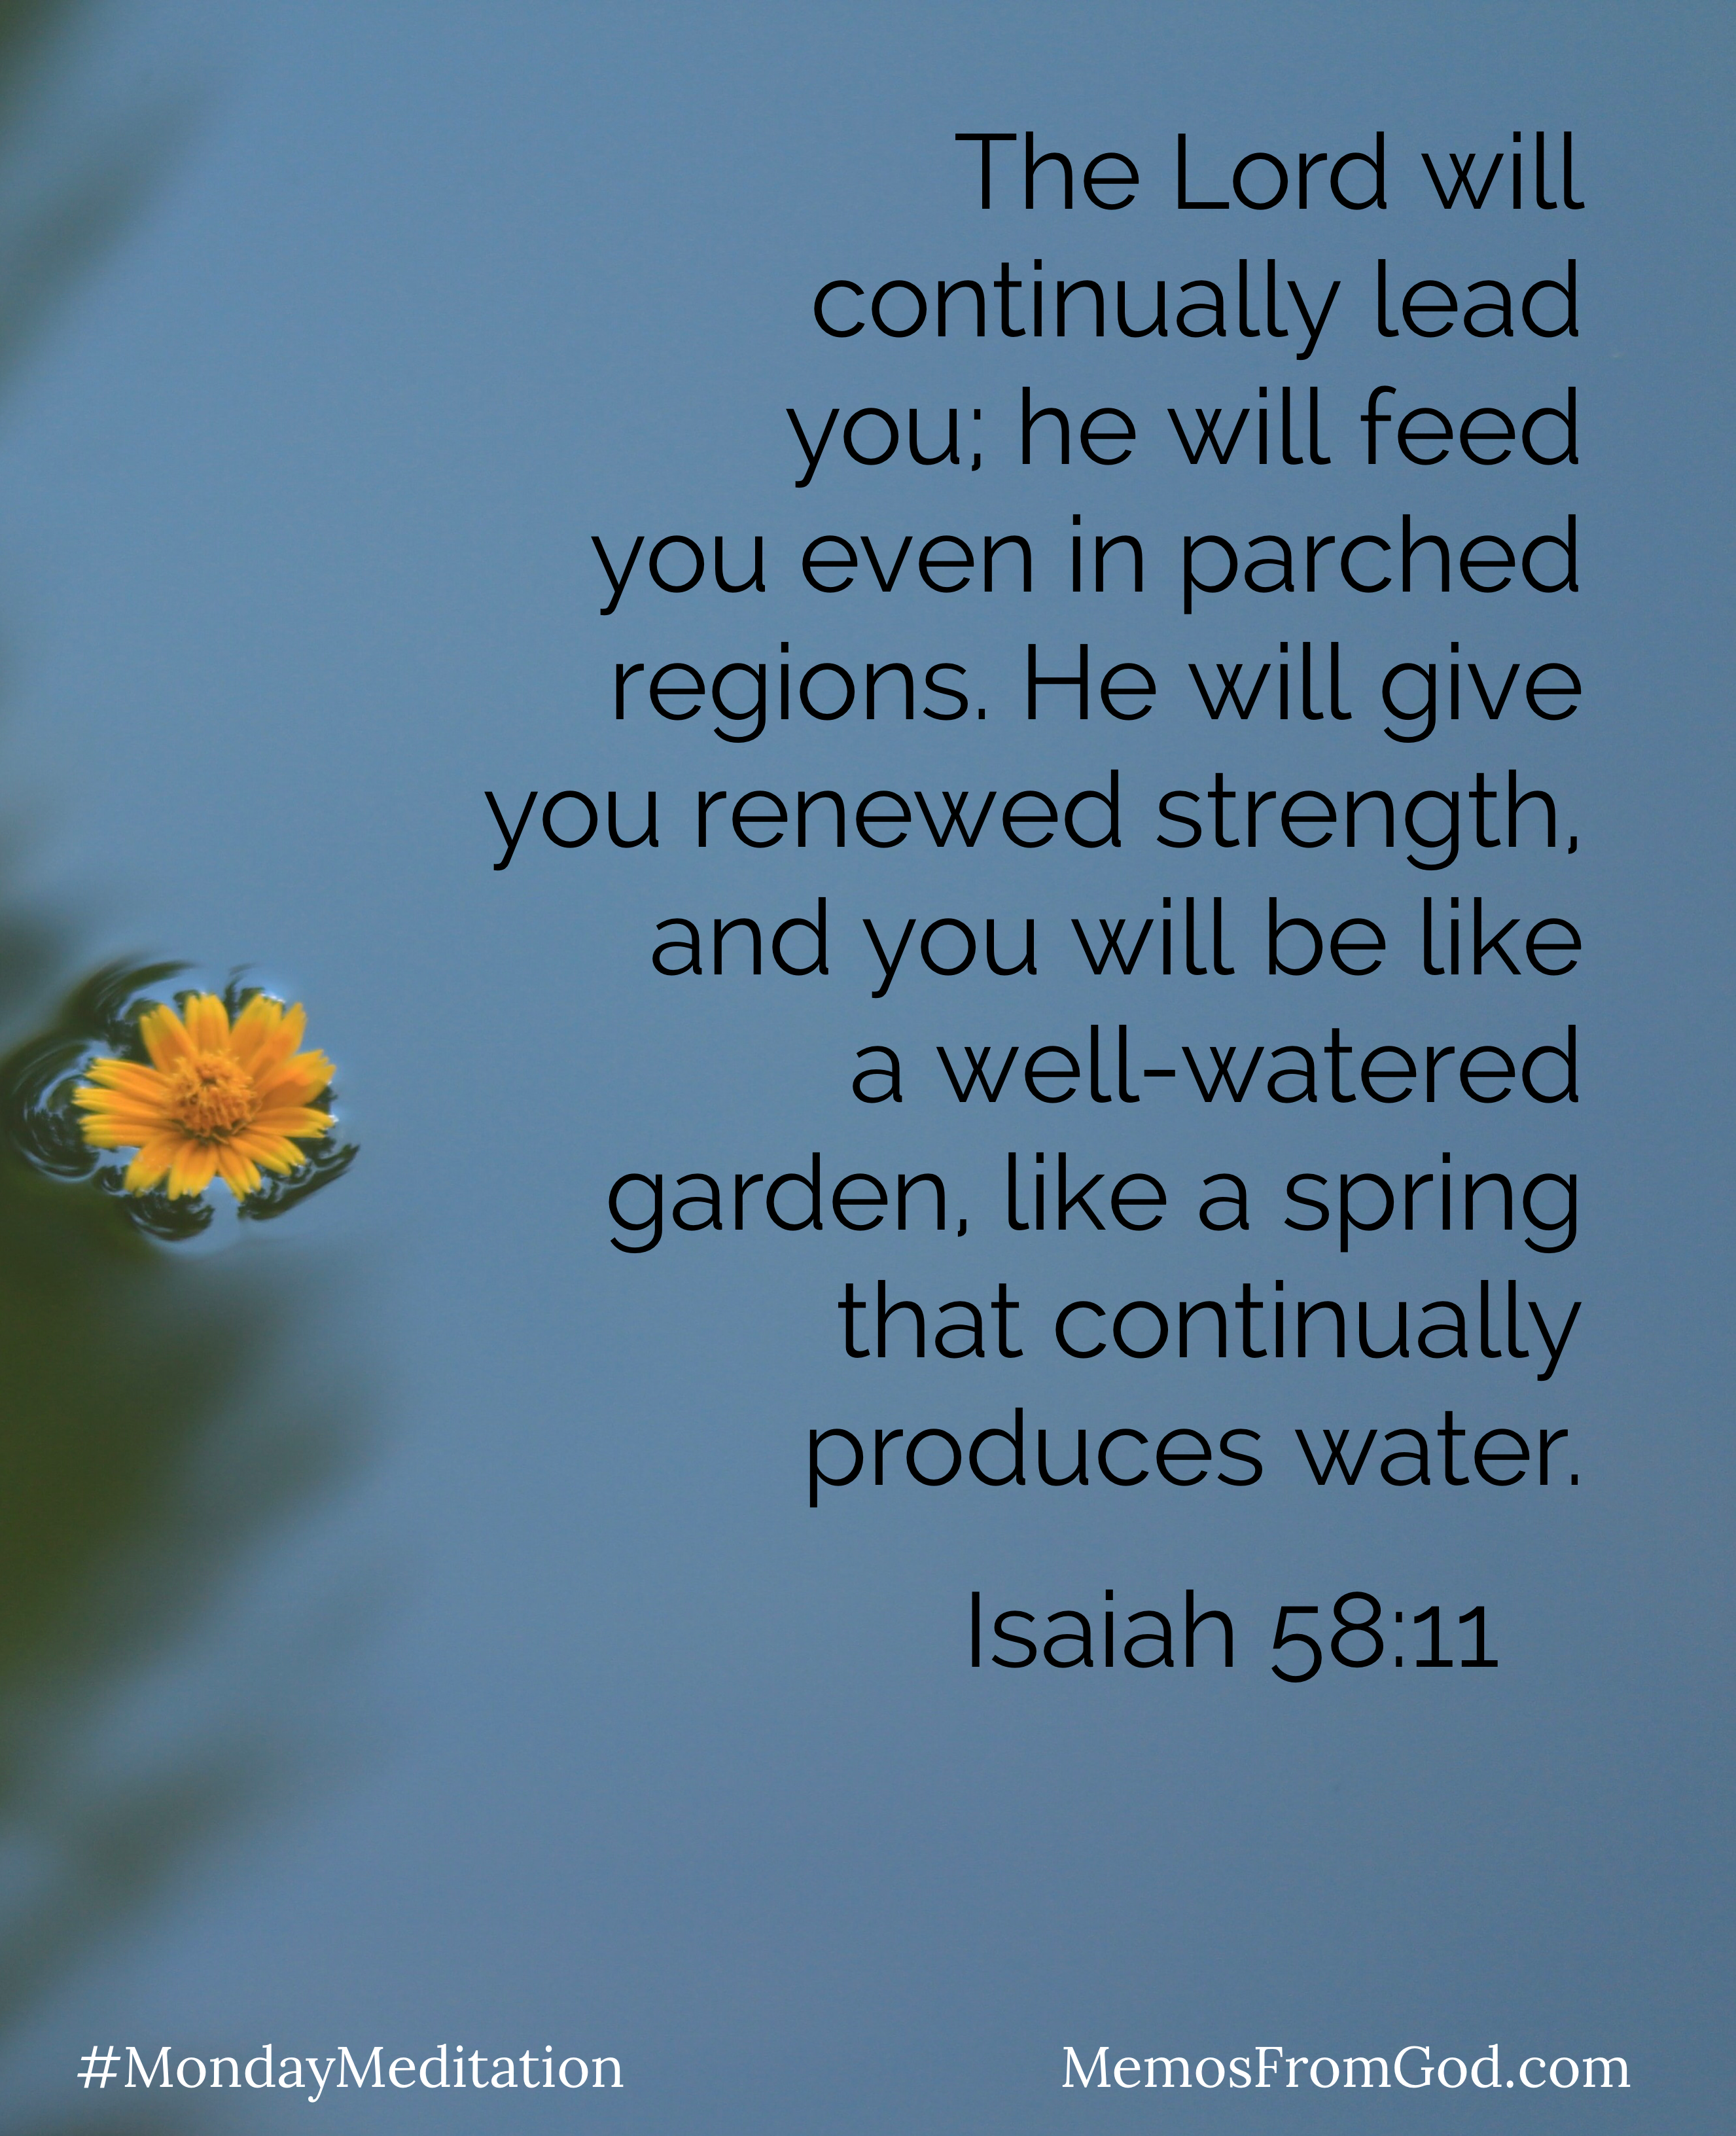 A small yellow flower floating in grey-blue water. Caption: The Lord will continually lead you; he will feed you even in parched regions. He will give you renewed strength, and you will be like a well-water garden, like a spring that continually produces water. Isaiah 58:11